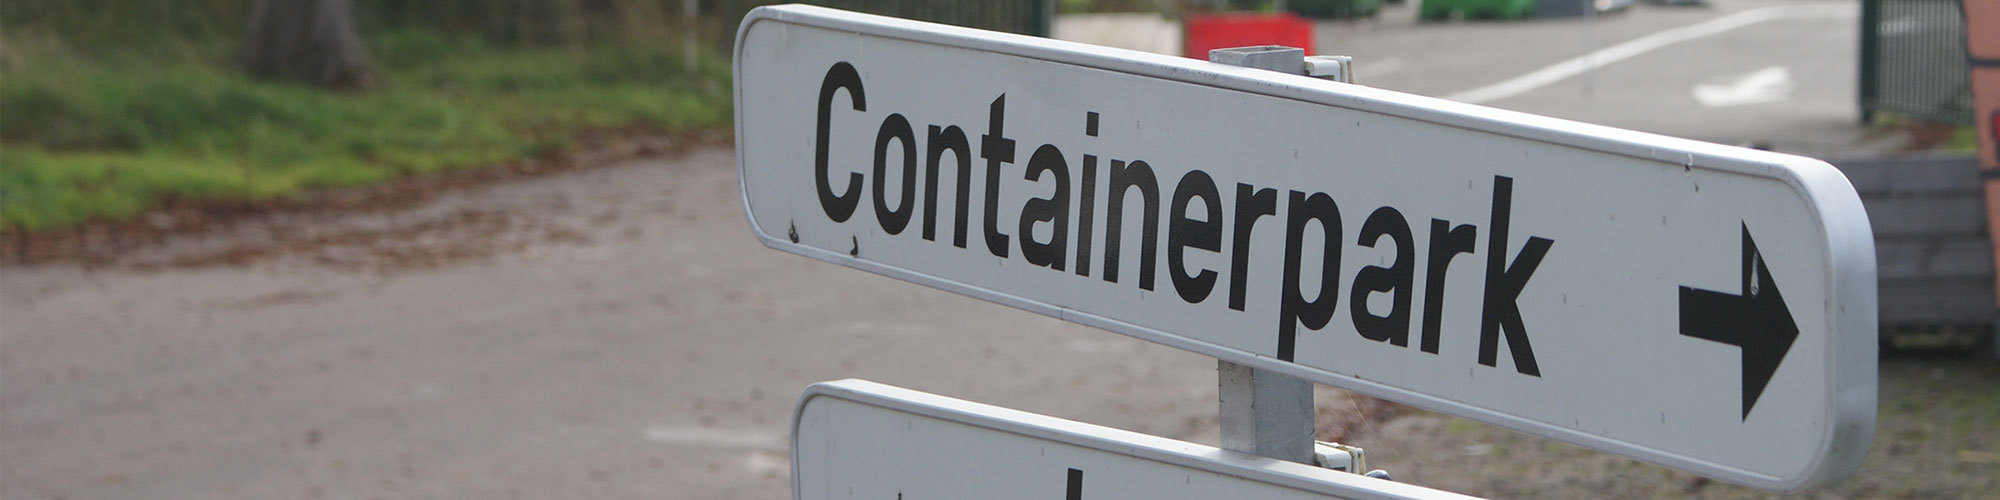 Containerpark header